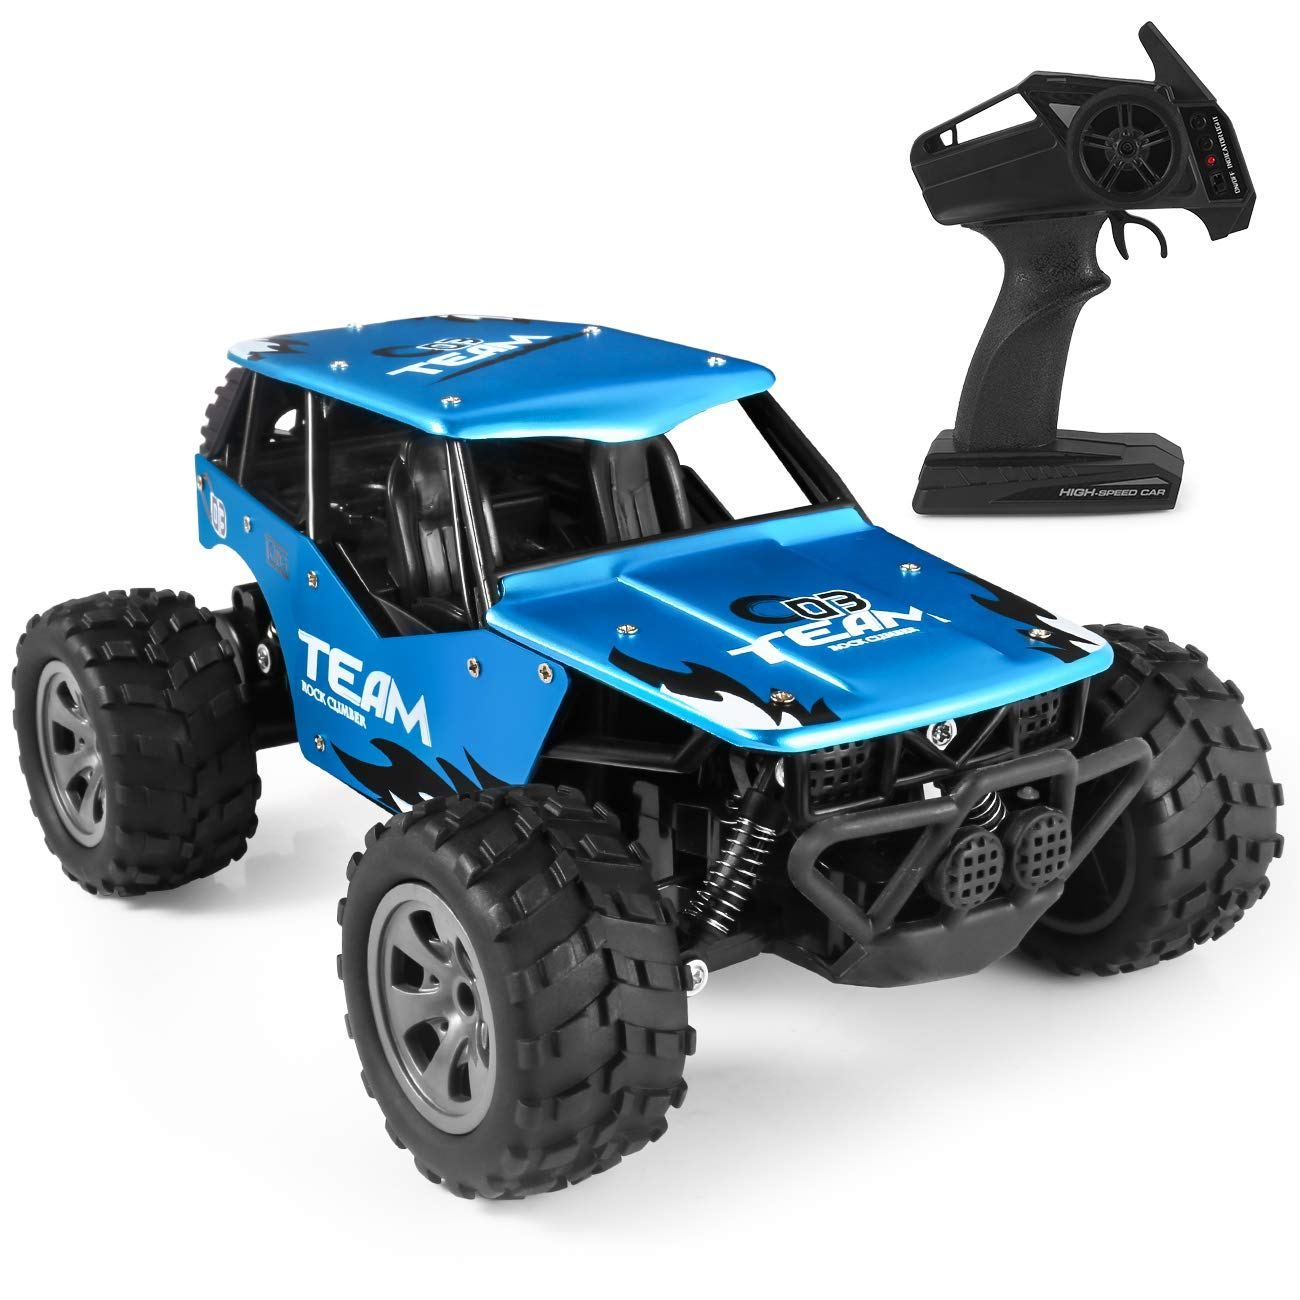 Vandora RC Car Toys, Off Road Cars Vehicle 4WD 2.4Ghz 1/16